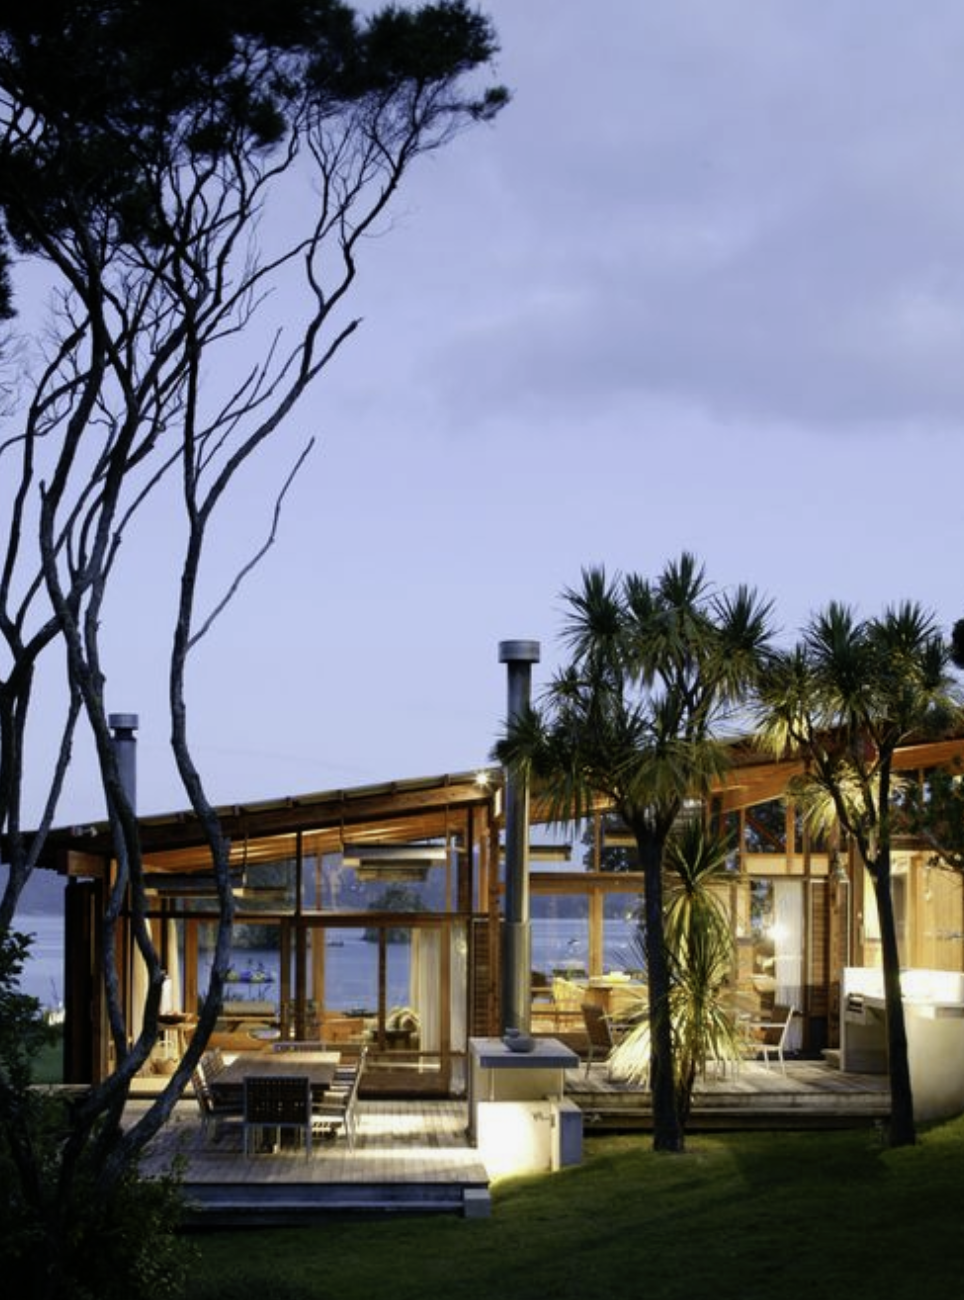 Pin By Overlander On Cabin Life In 2020 Beach House Design Modern Beach House Architecture